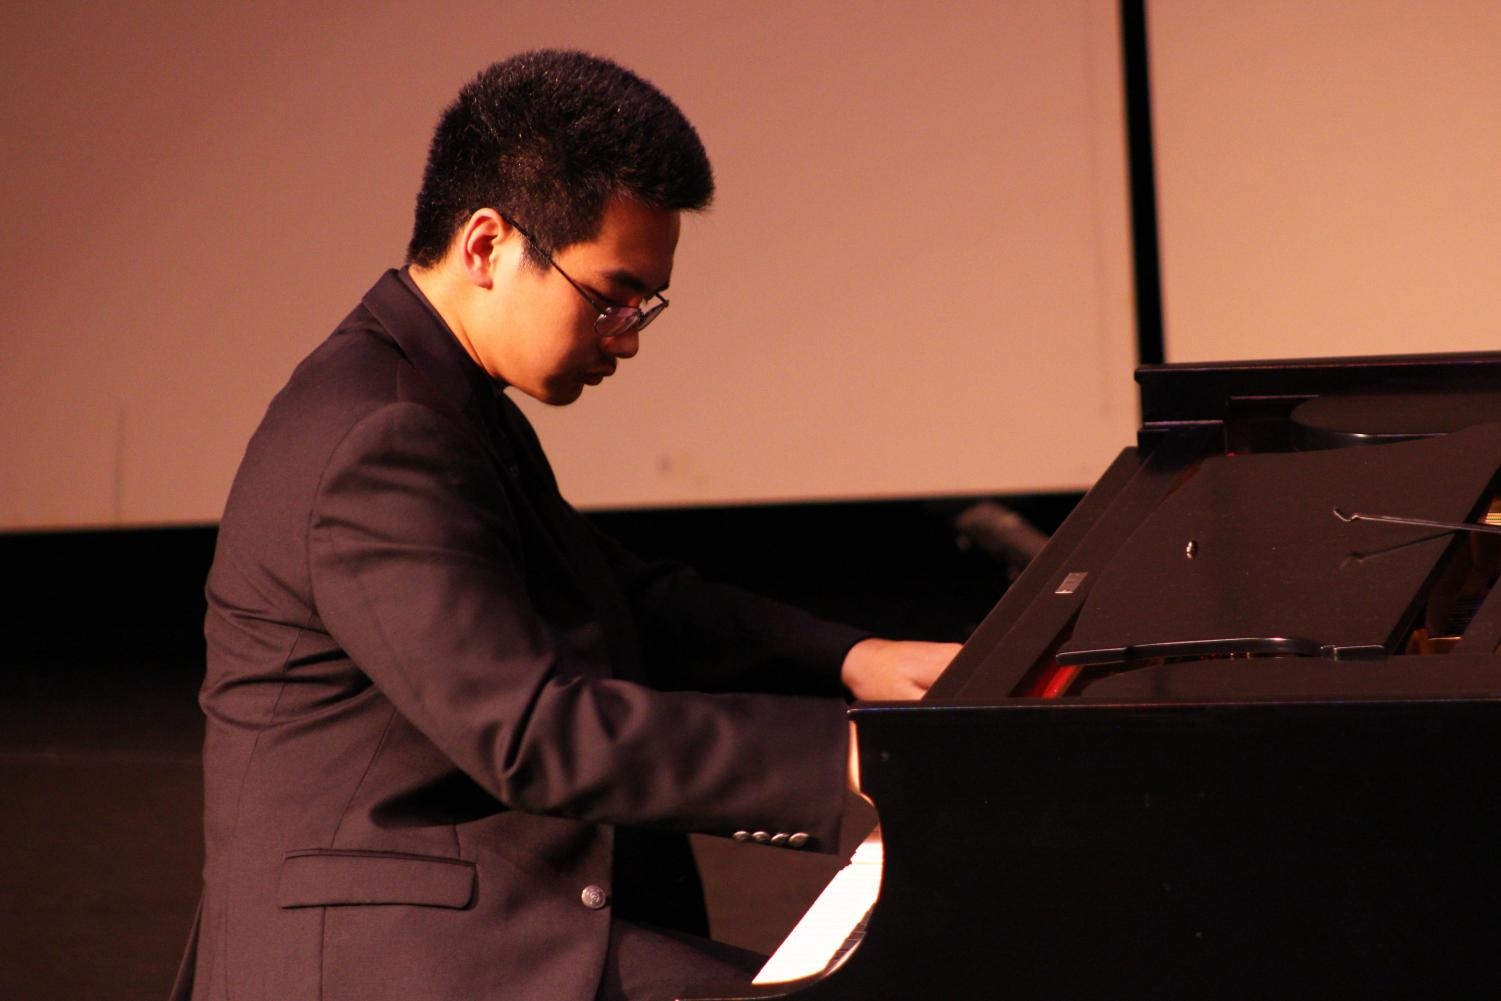 """Piano sophomore Daniel Wang plays Sonata Op. 22 No. 11 in B-flat Major (Movement 1) by Beethoven. It was the second piece he played during the recital, after Prelude and Fugue in A-flat Major, BWV 862 by Bach. """"In the beginning, I actually didn't enjoy performing,"""" Wang said. """"Eventually I came to enjoy it because I want to be able to perform music to an audience and make the audience feel what I feel when I practice."""""""